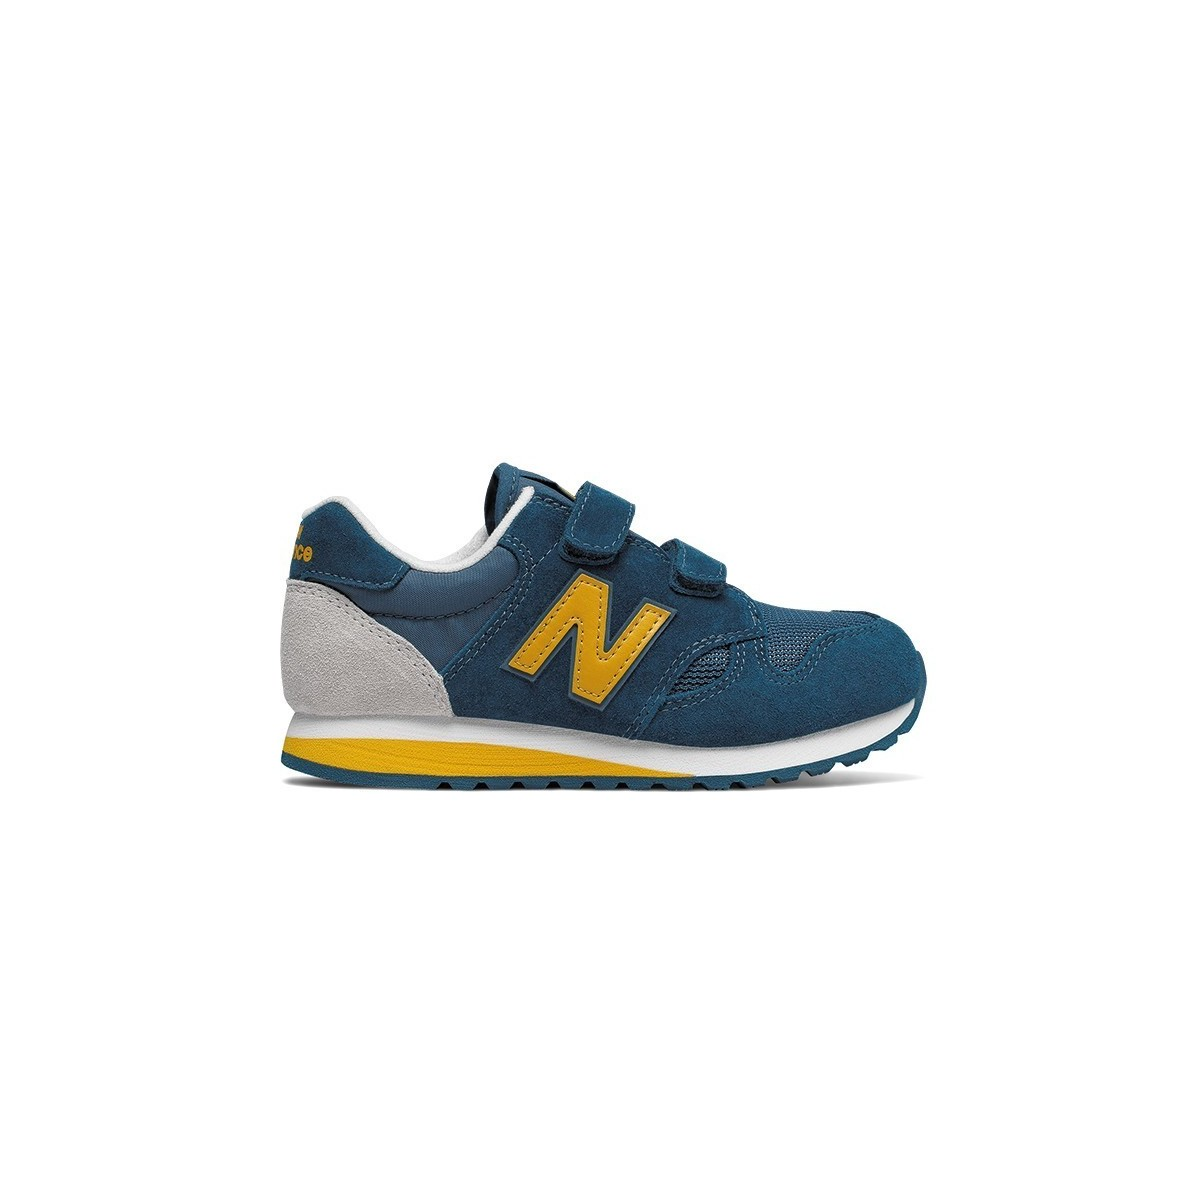 Basket New Balance KA520 blue/yellow